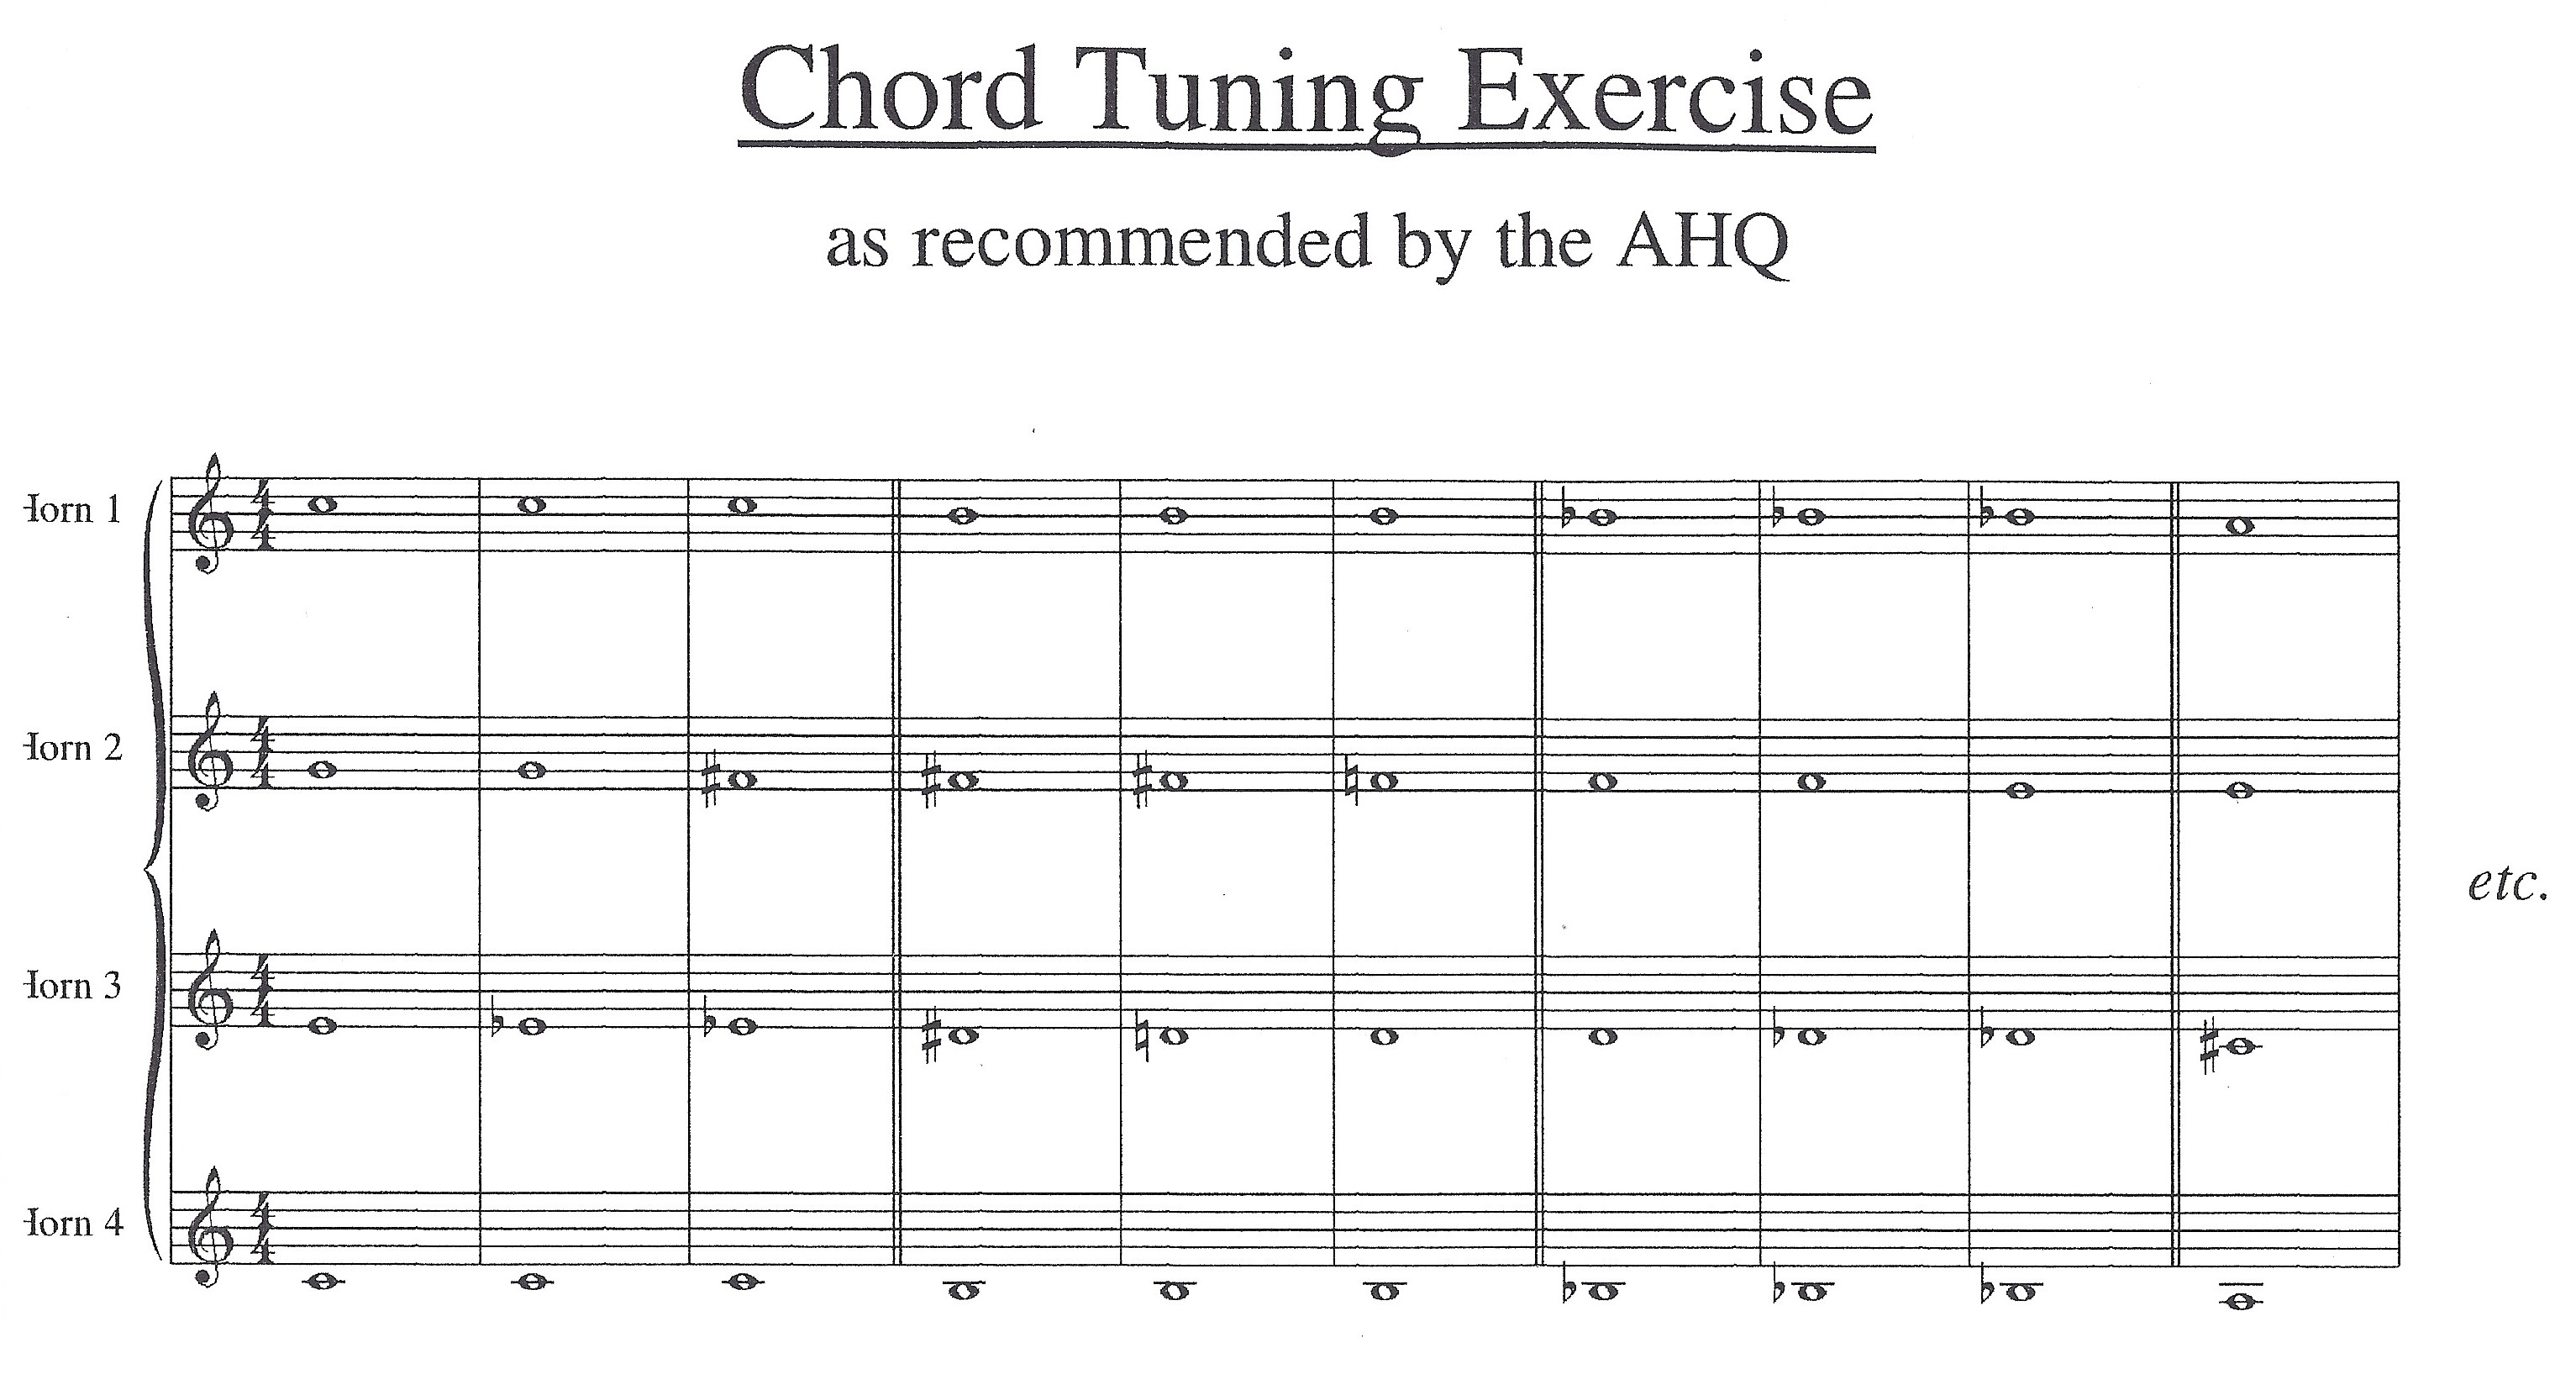 Chord Tuning Place marker link